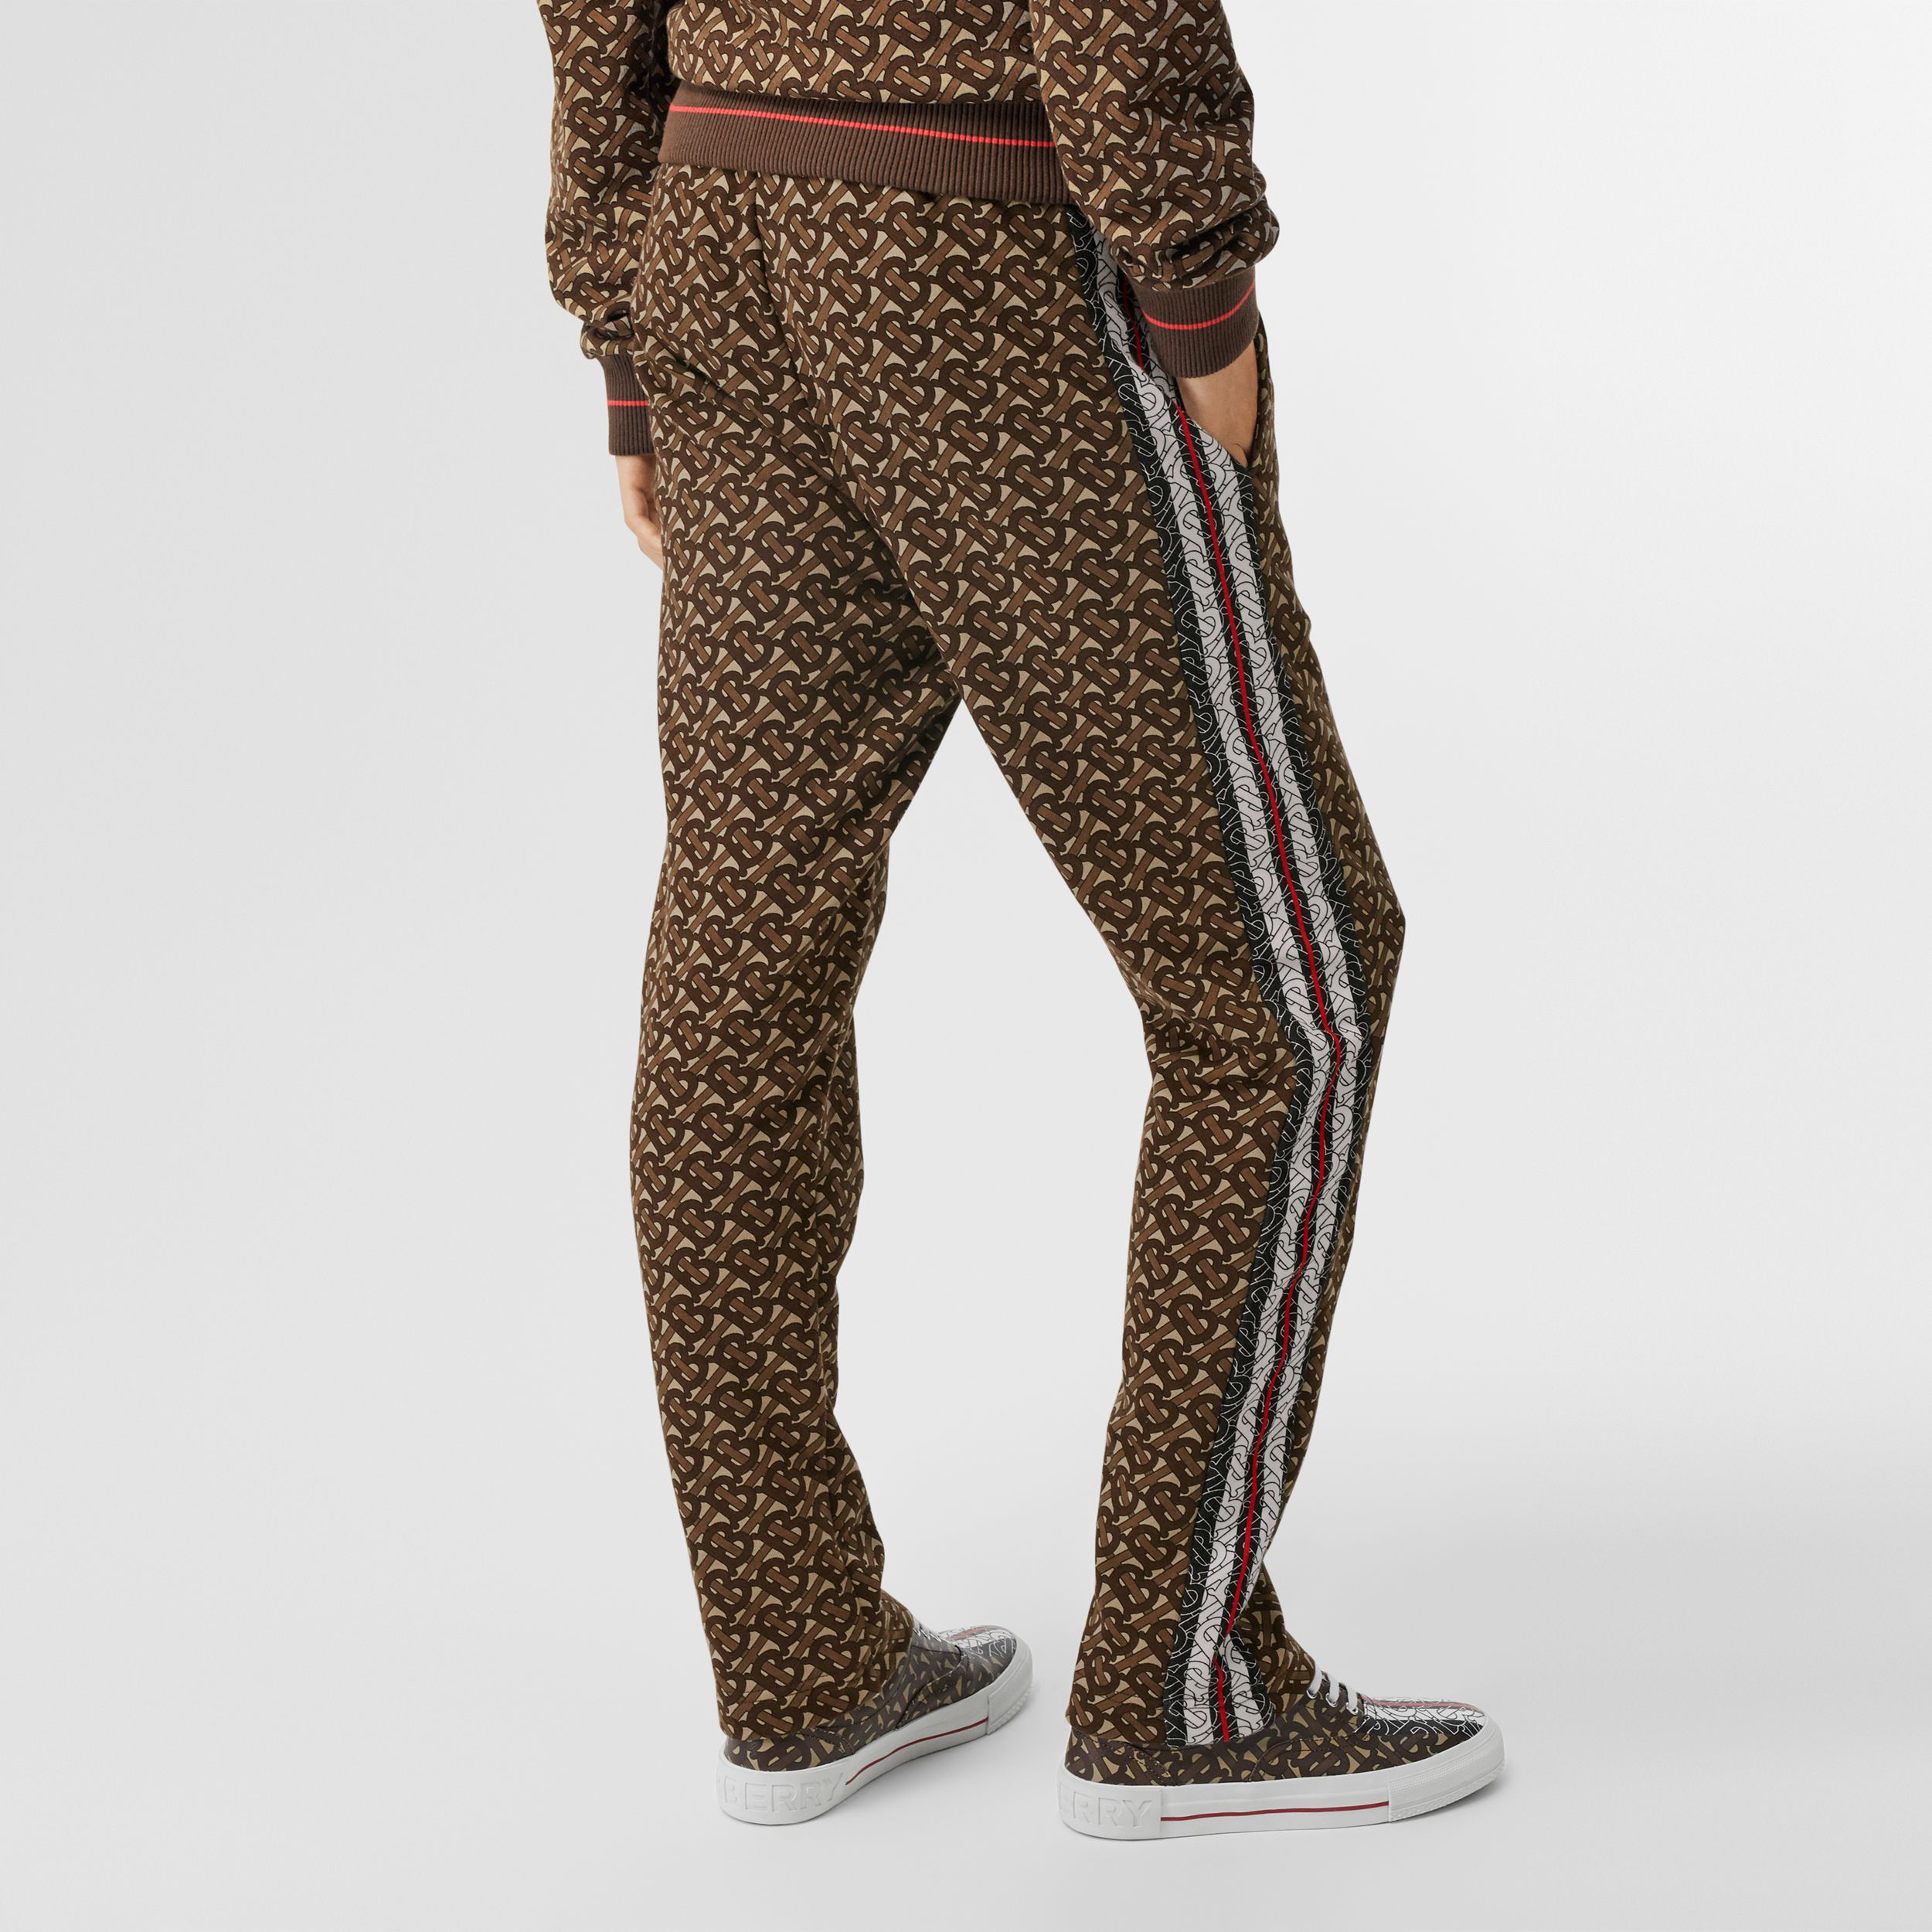 Monogram Stripe Print Cotton Jogging Pants in Bridle Brown - Women | Burberry Singapore - 2